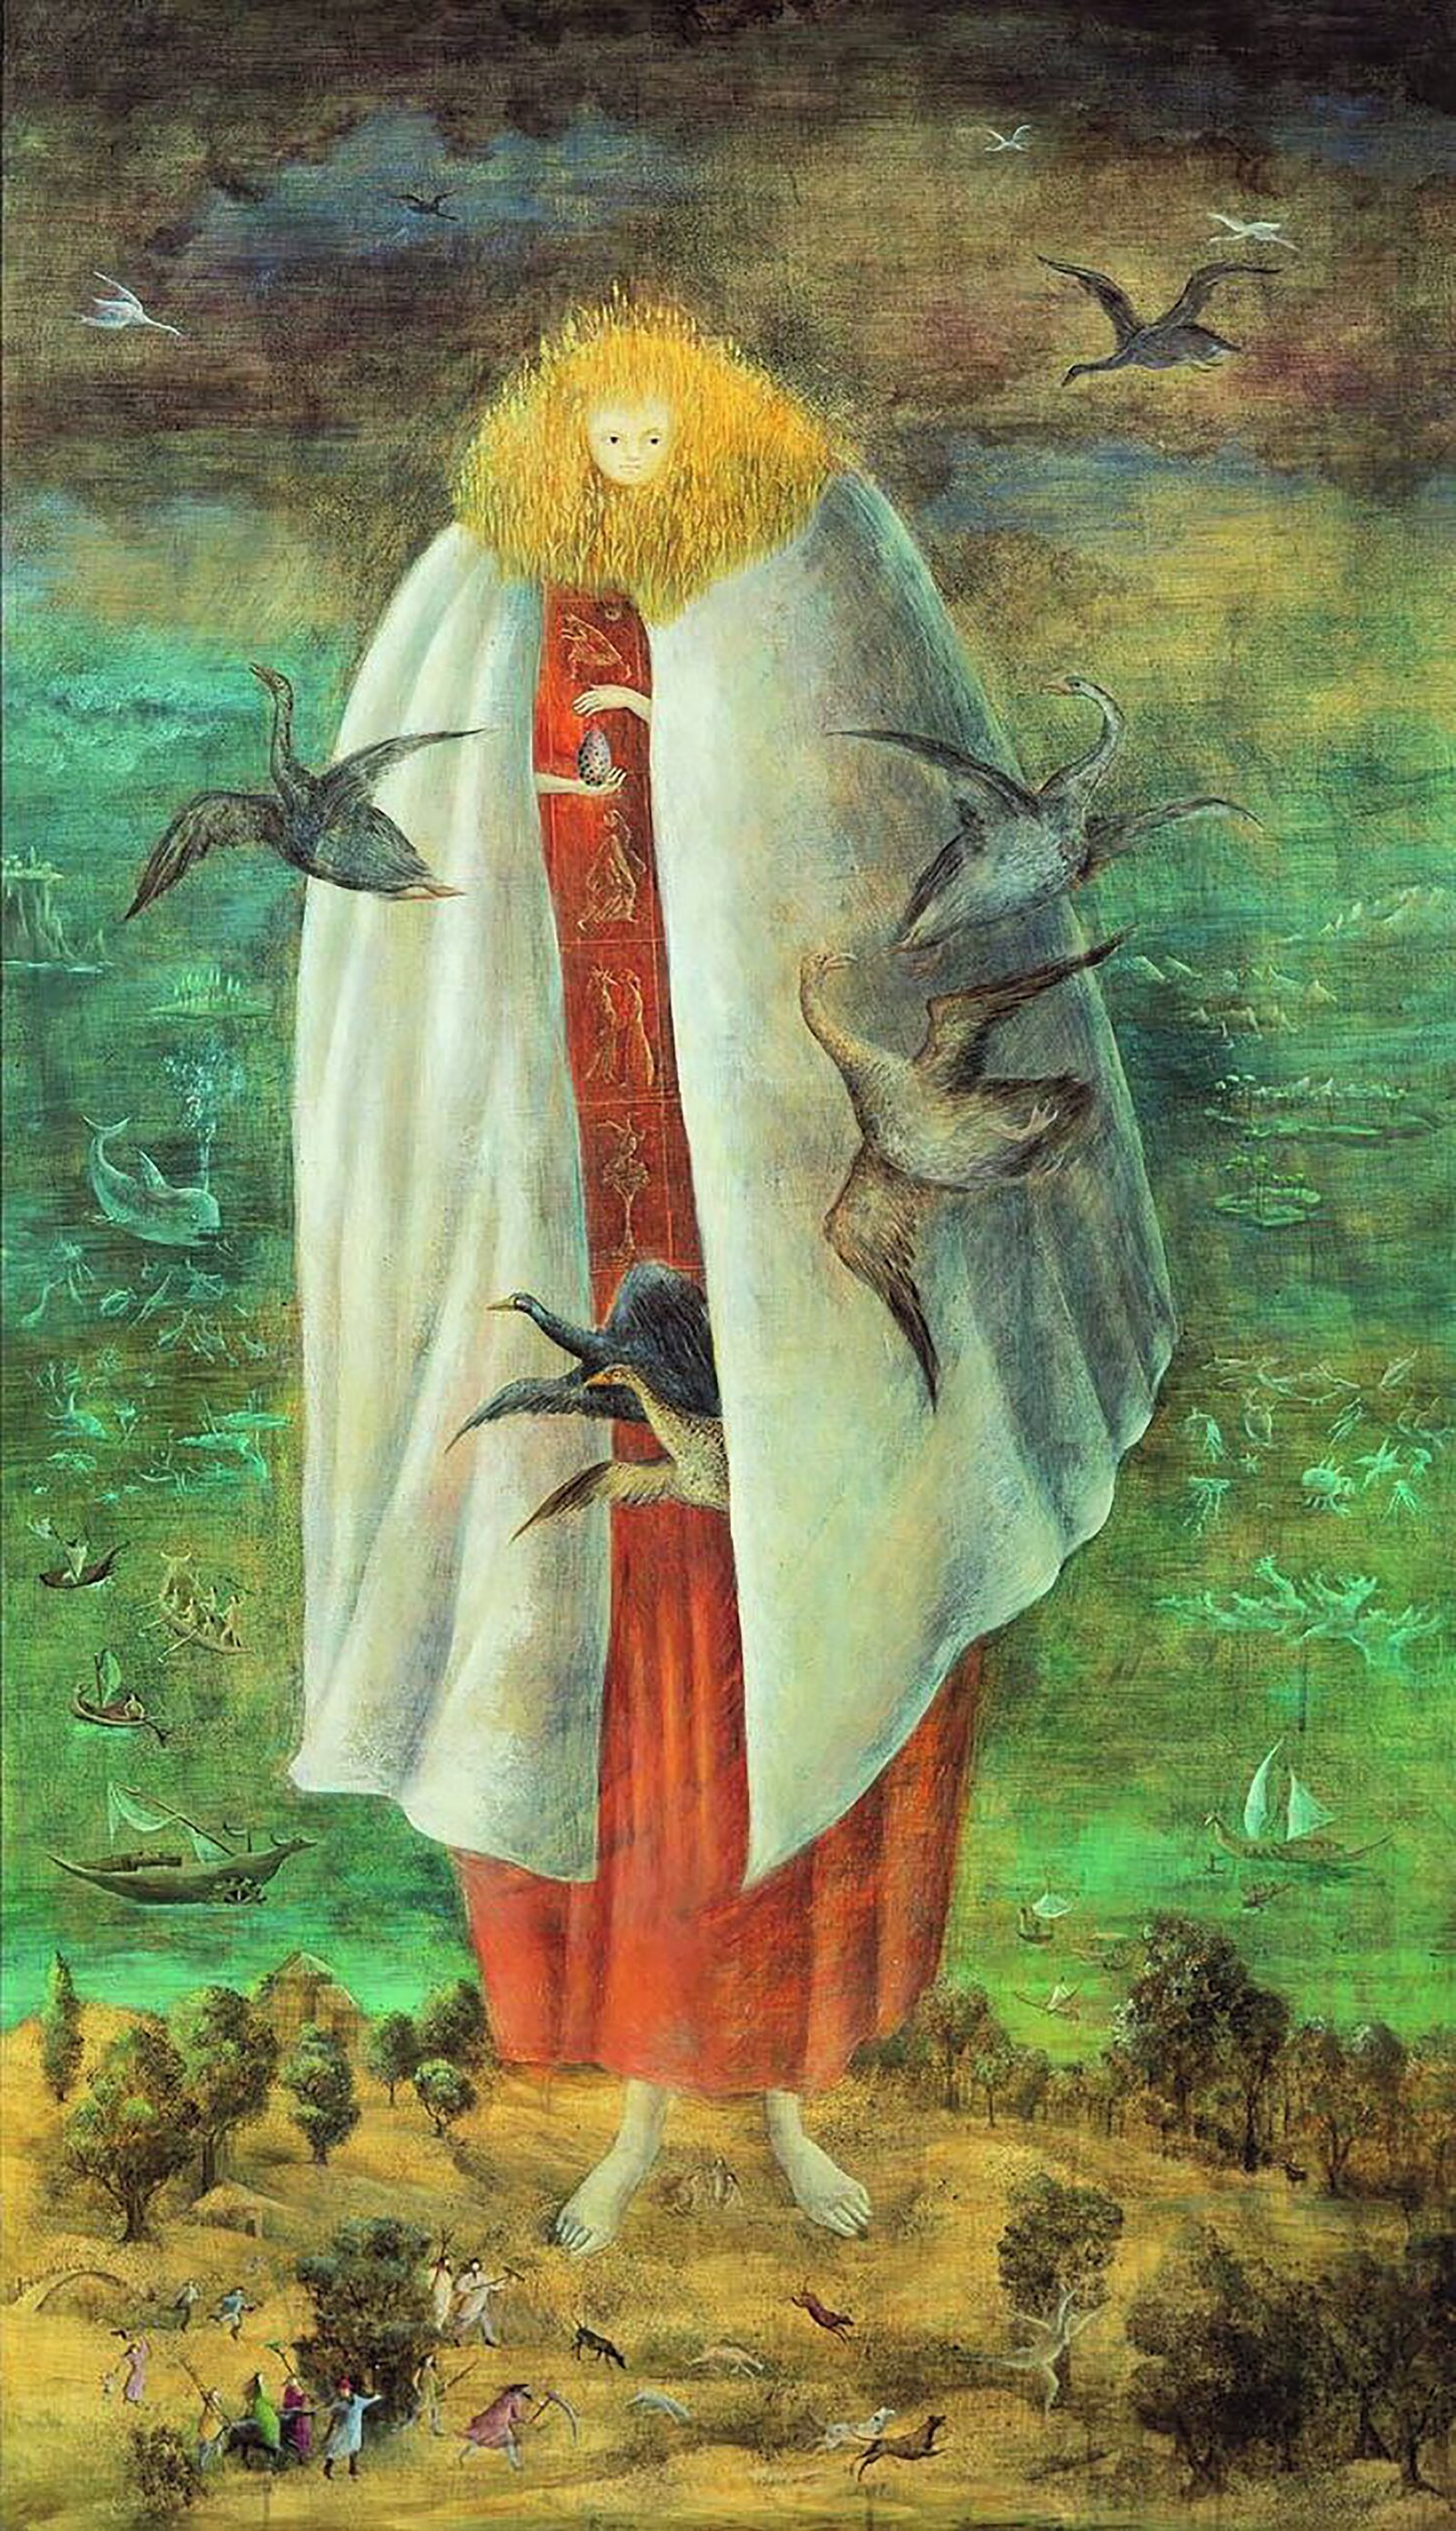 Maleri av Leonora Carrington: The Giantess (The Guardian of the Egg), 1947. Olje på lerret. © Leonora Carrington / BONO 2019